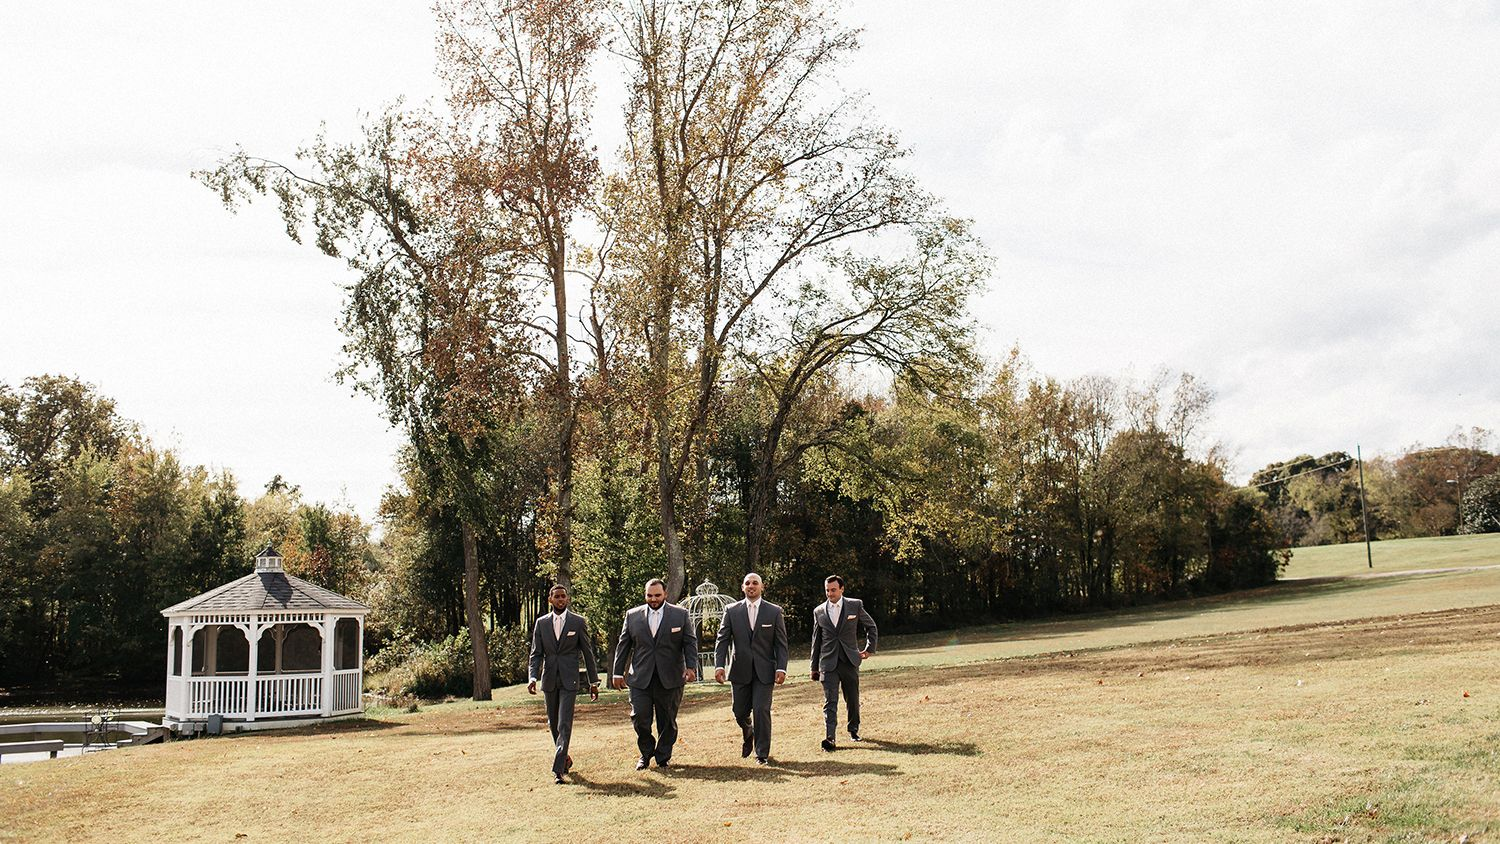 Groomsmen Walking Through Field Near Gazebo